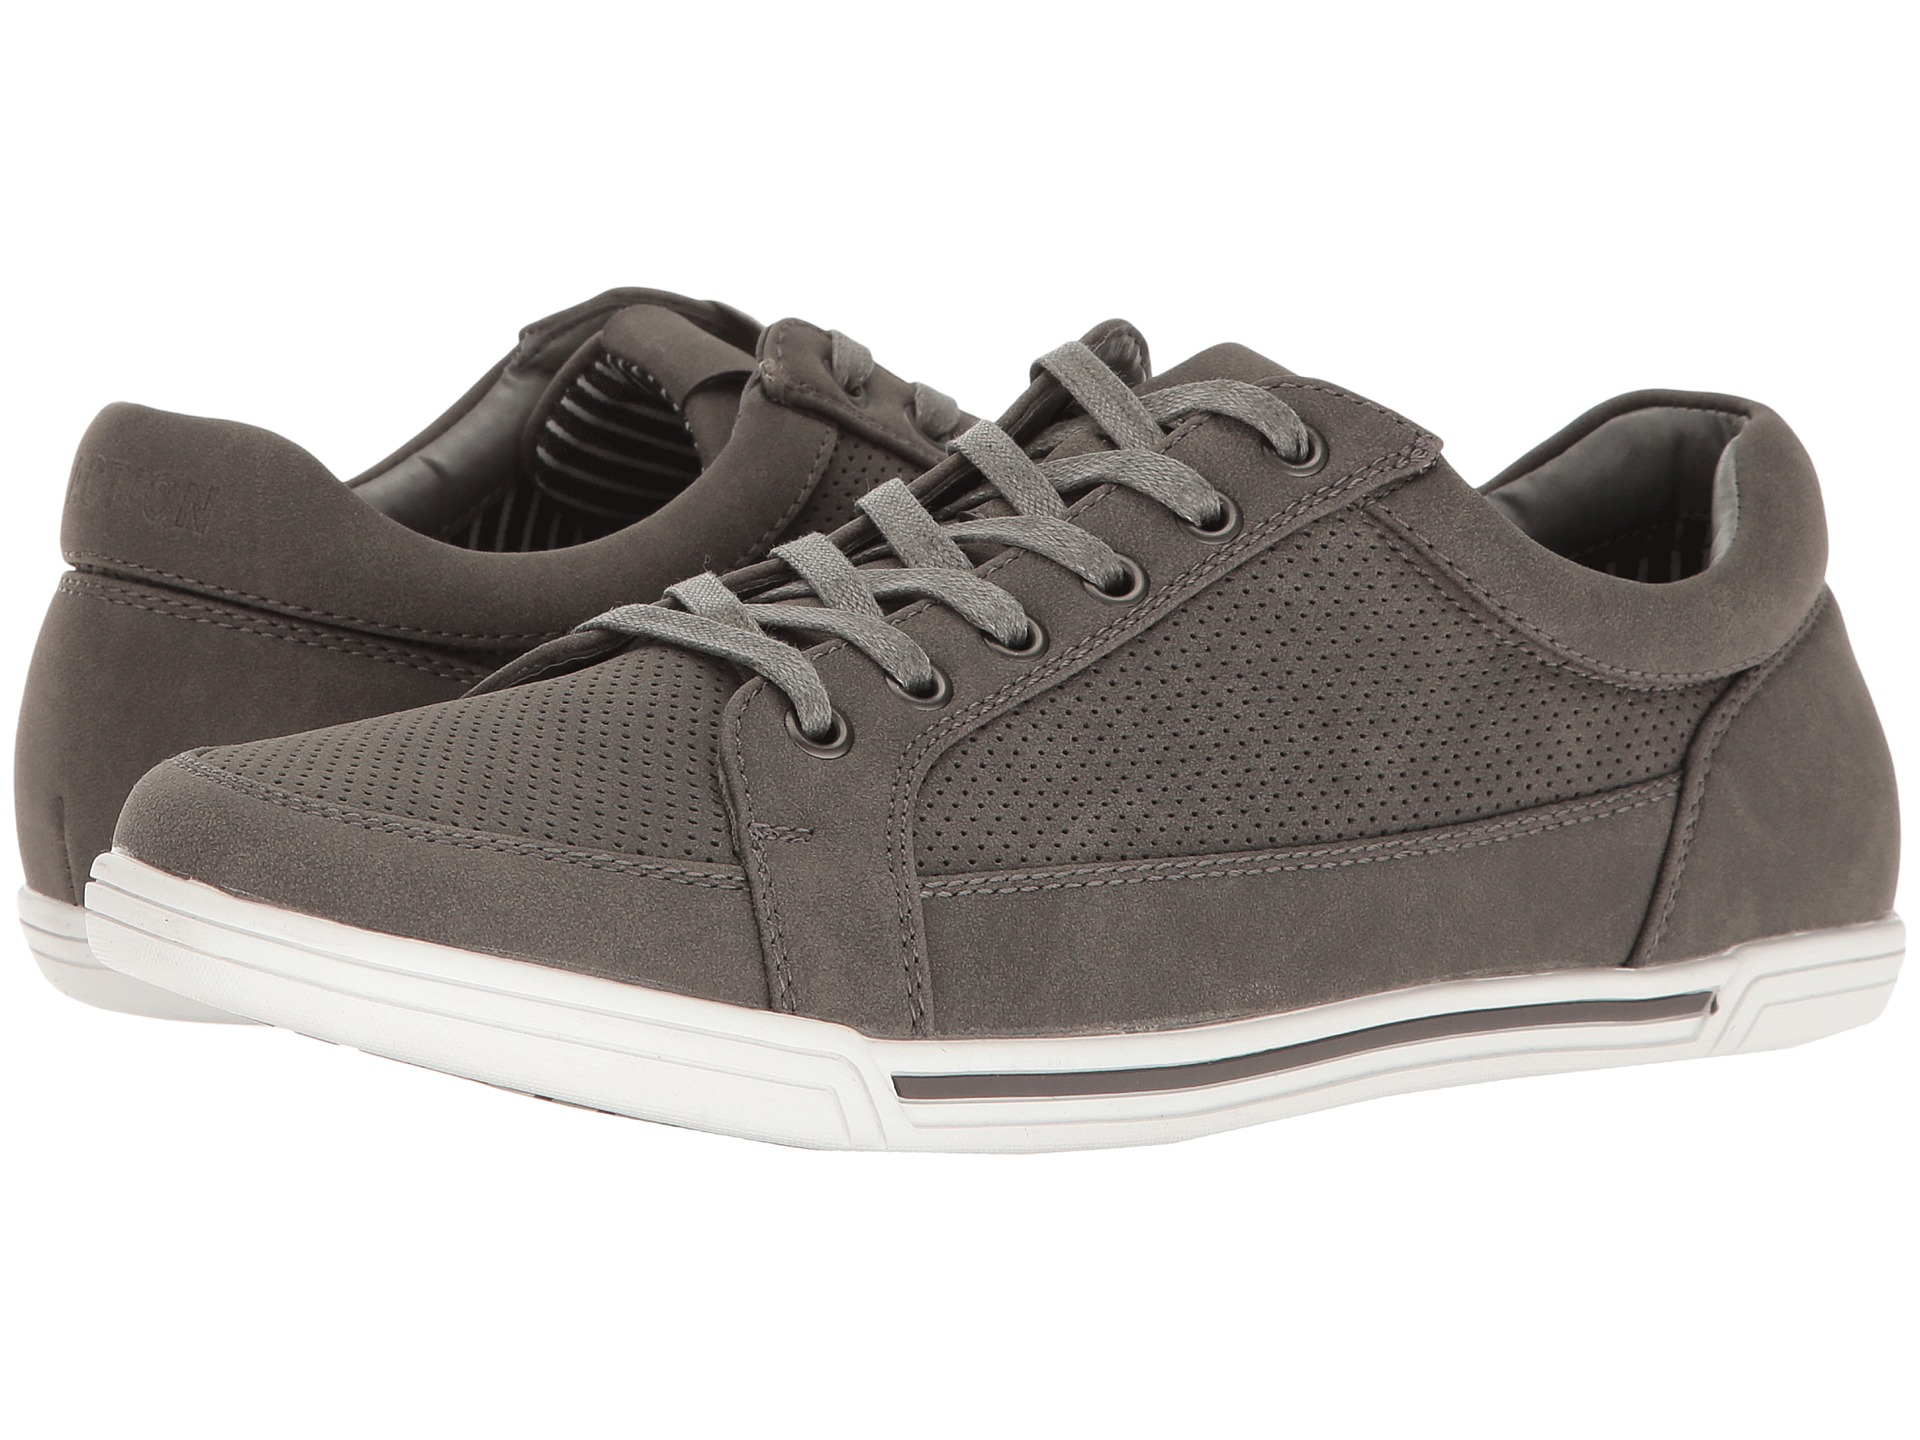 Kenneth Cole Reaction Shoes Size Chart